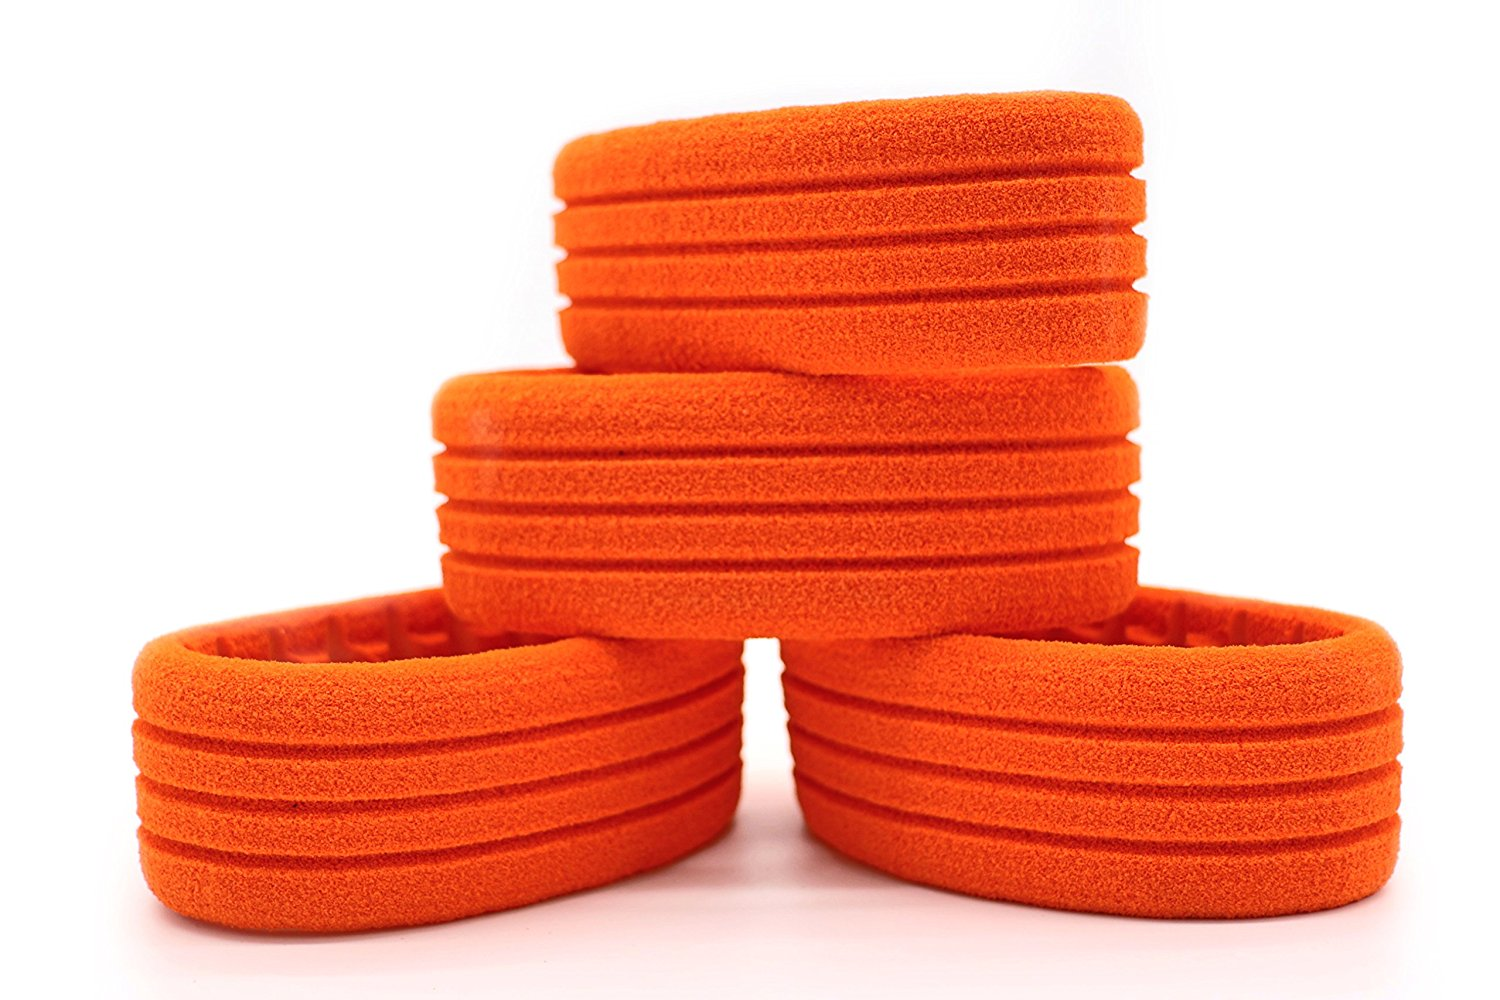 4PCS RC 1/8 Rc Car Tyres Foam Inserts (Inner Tyres /Liner/ Tires) for 1:8 RC Car Tyre Buggy HPI Rc4wd D90 Trx-4 Trx4 Crawler Car